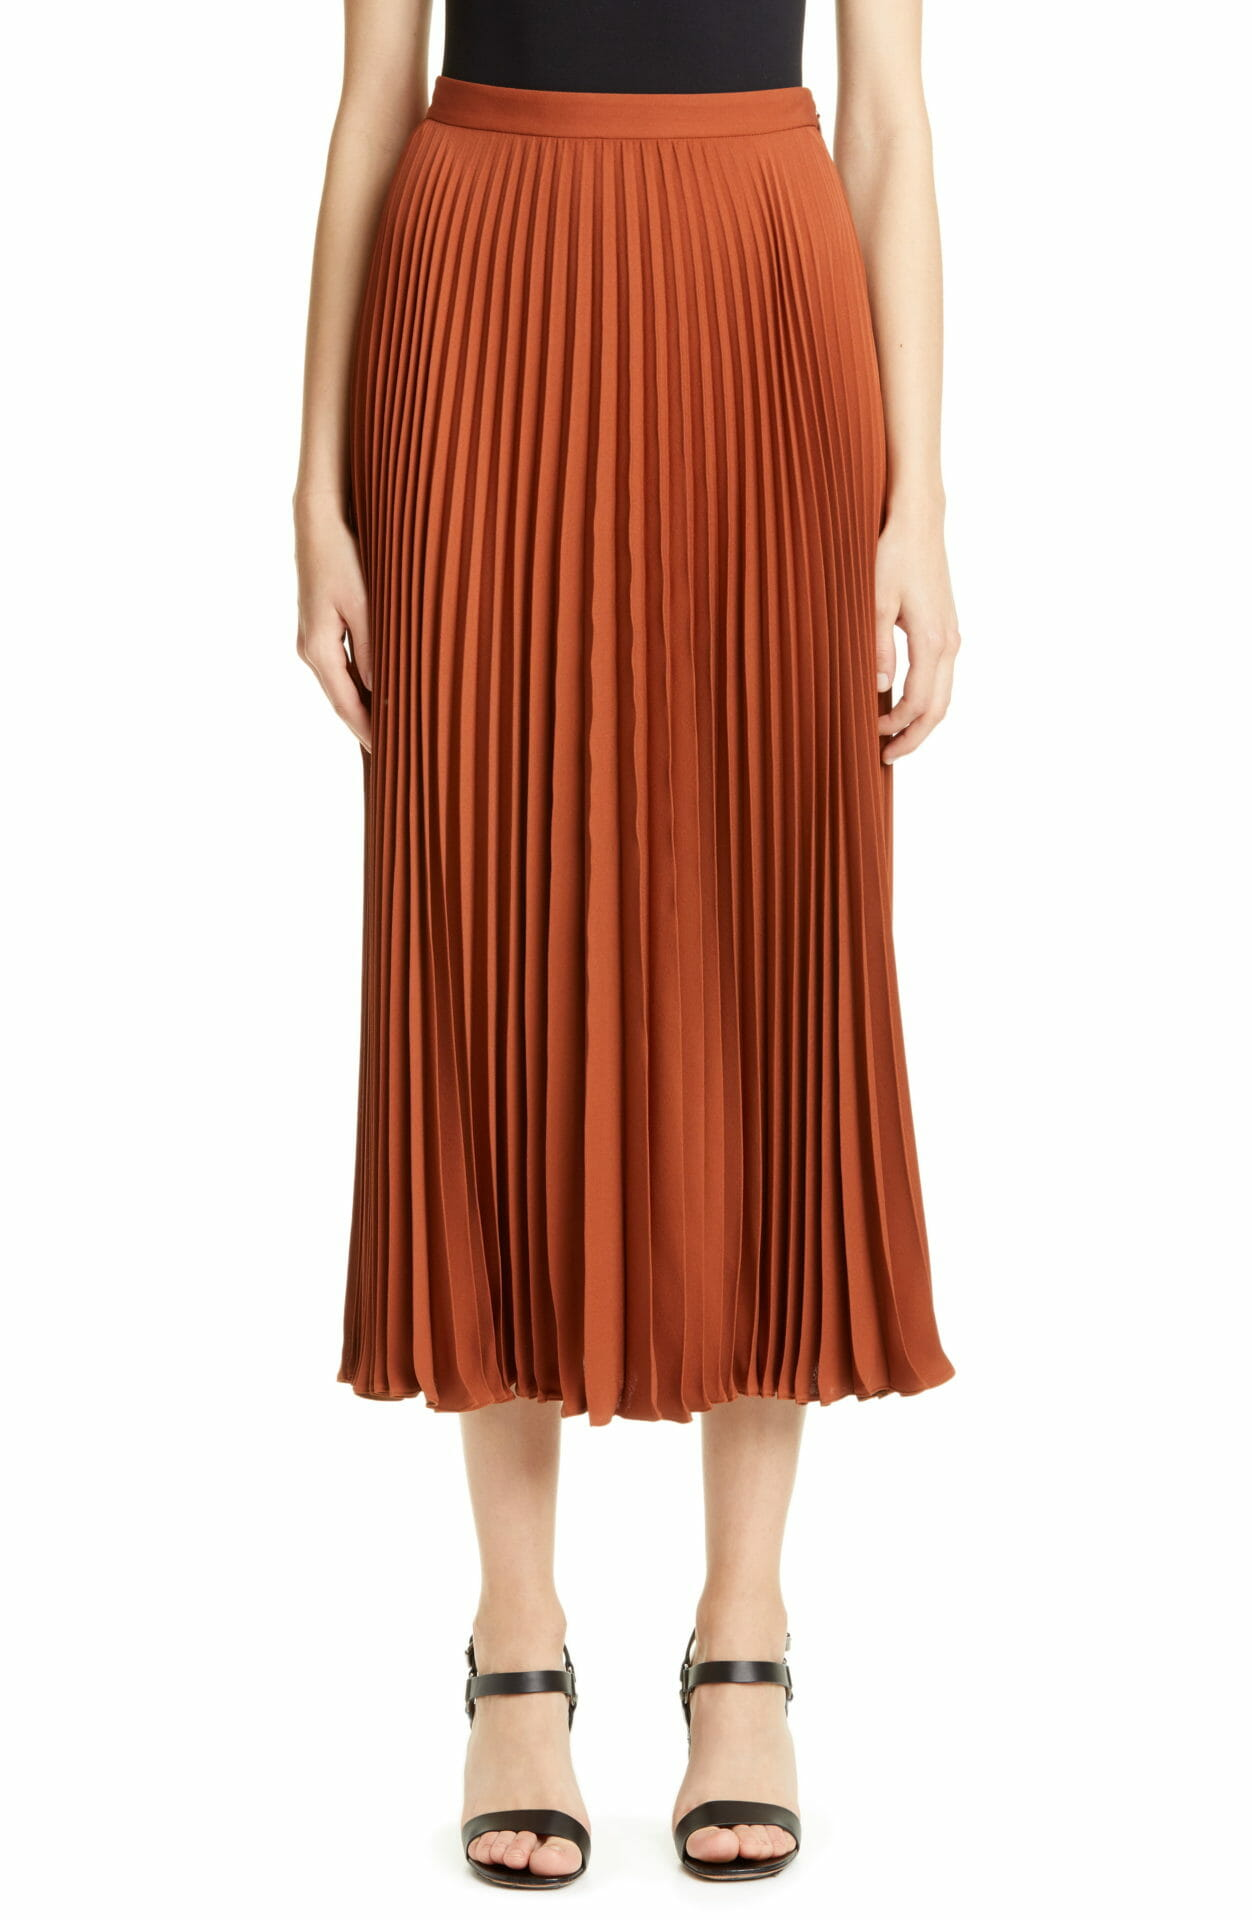 VALENTINO Plissé Silk Midi Skirt, Main, color, LAN-LAND